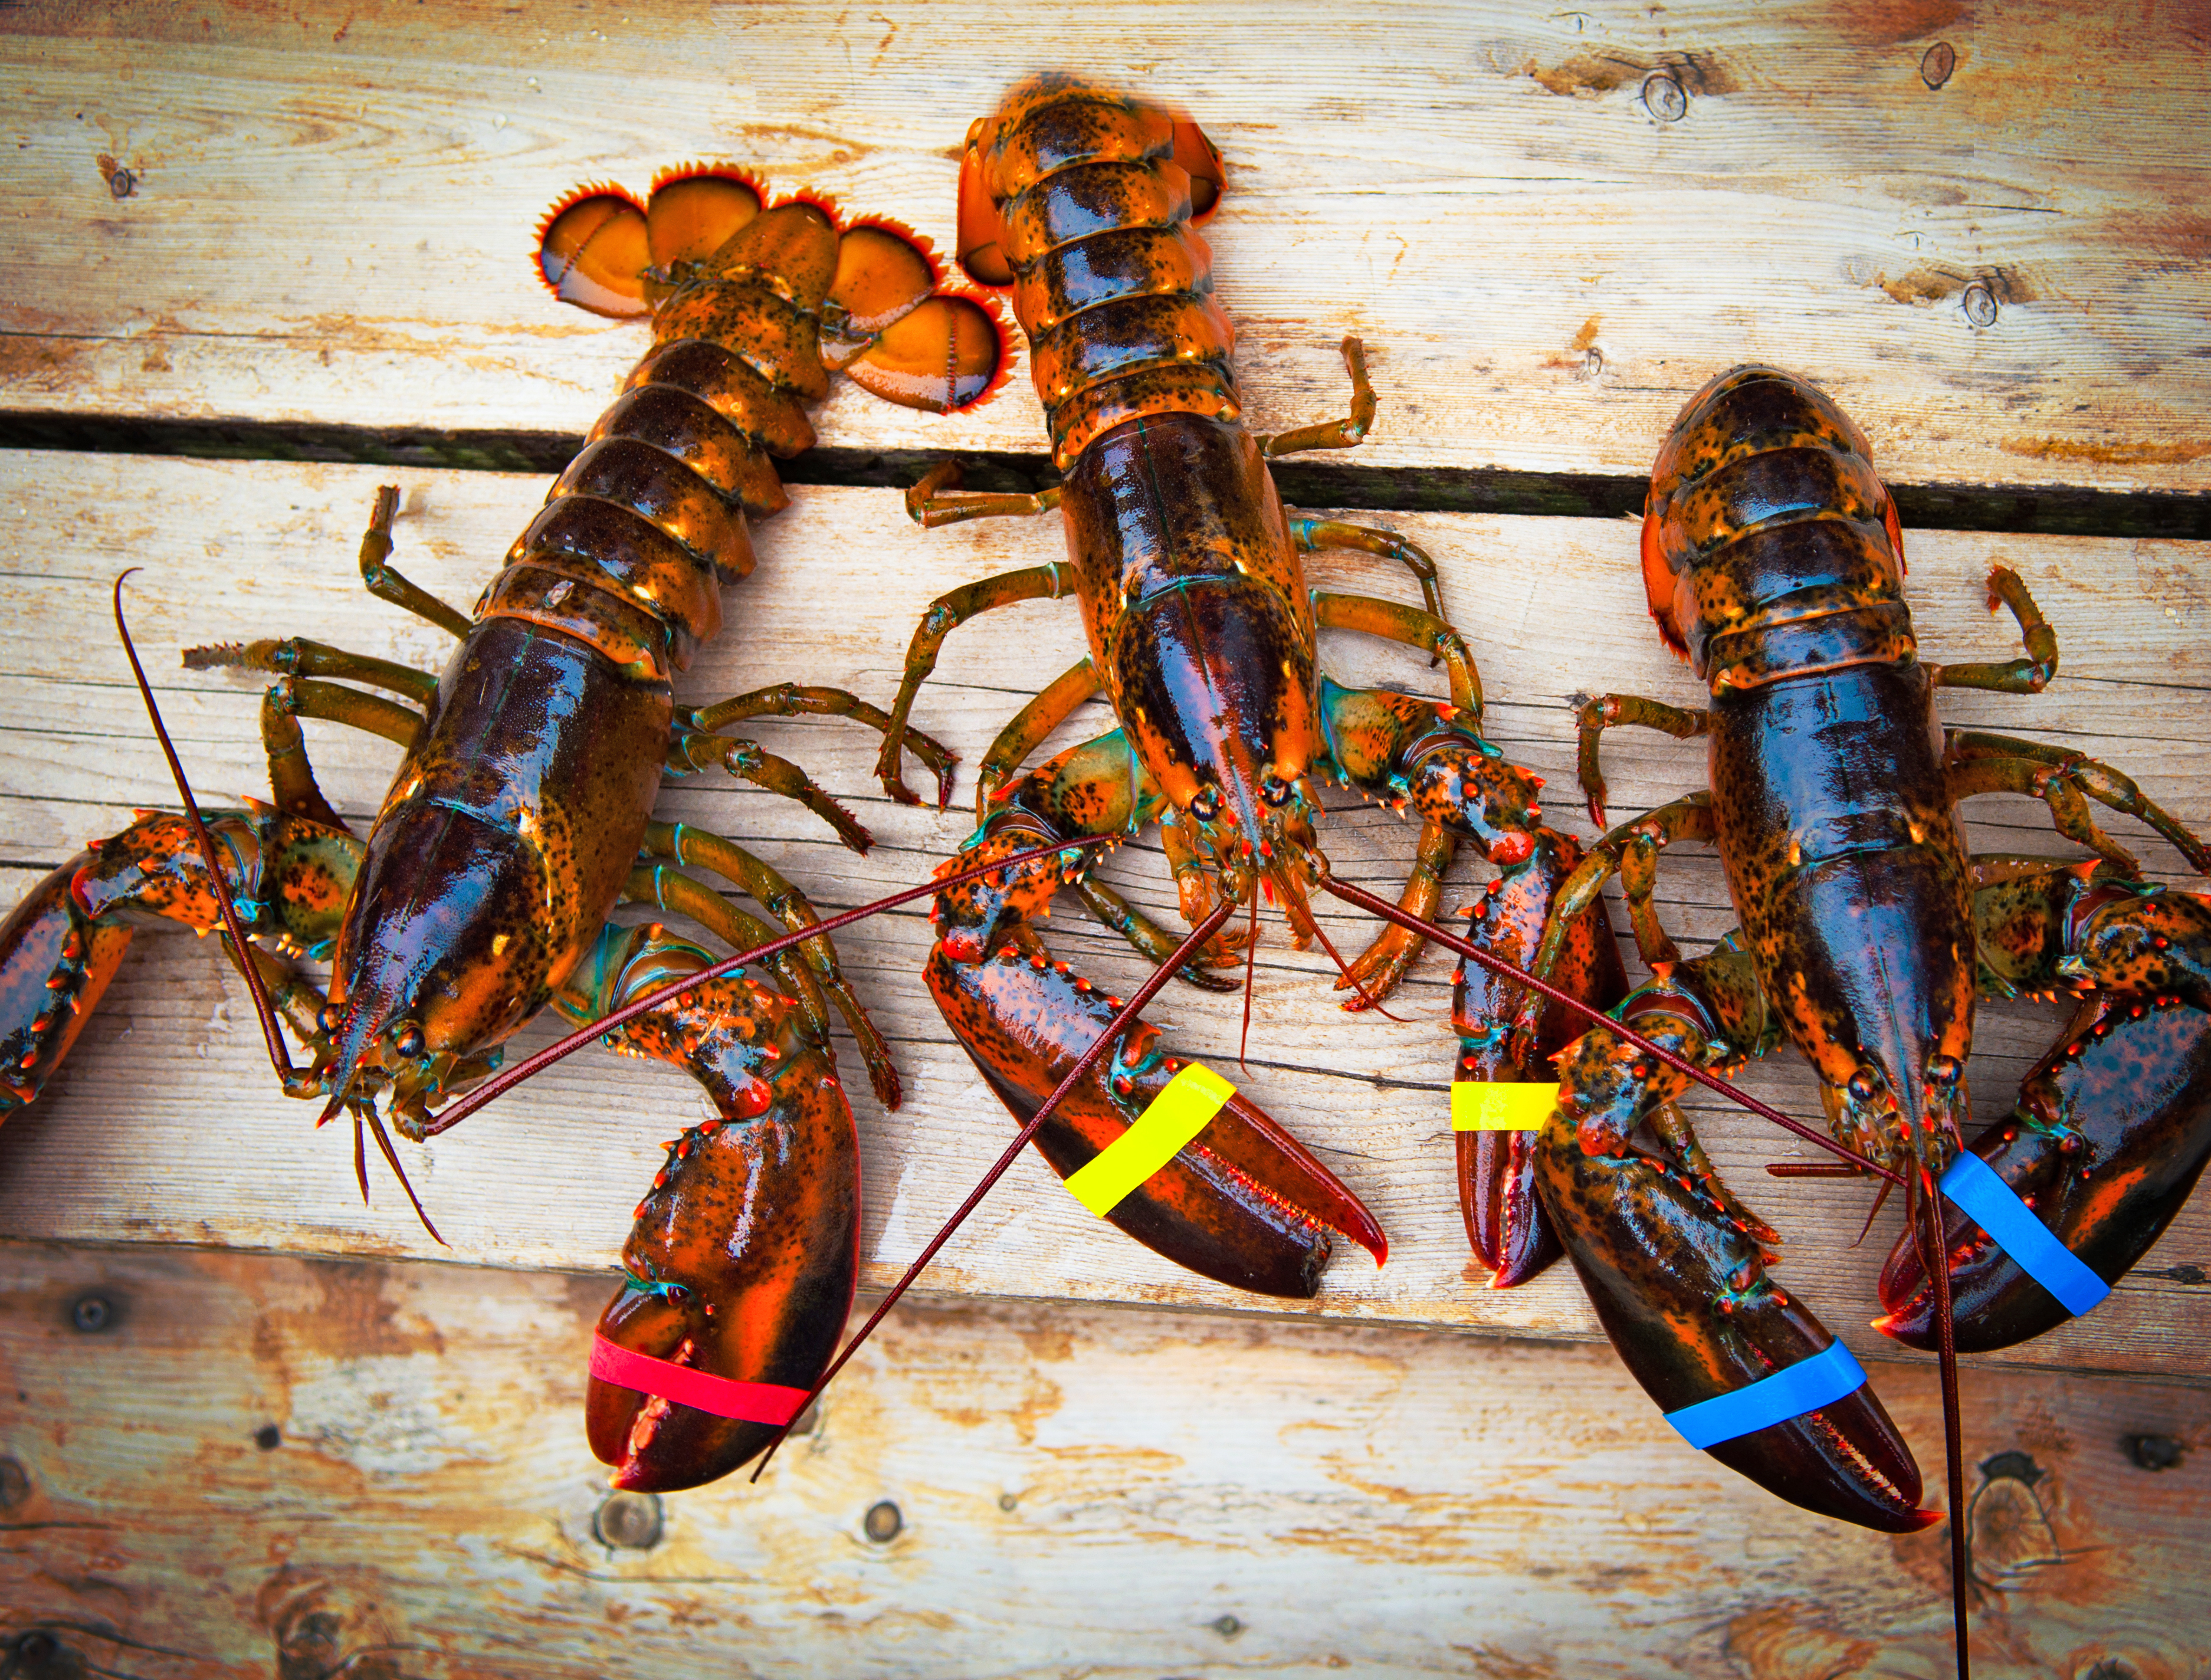 Three fresh lobsters laid out on a wooden surface.